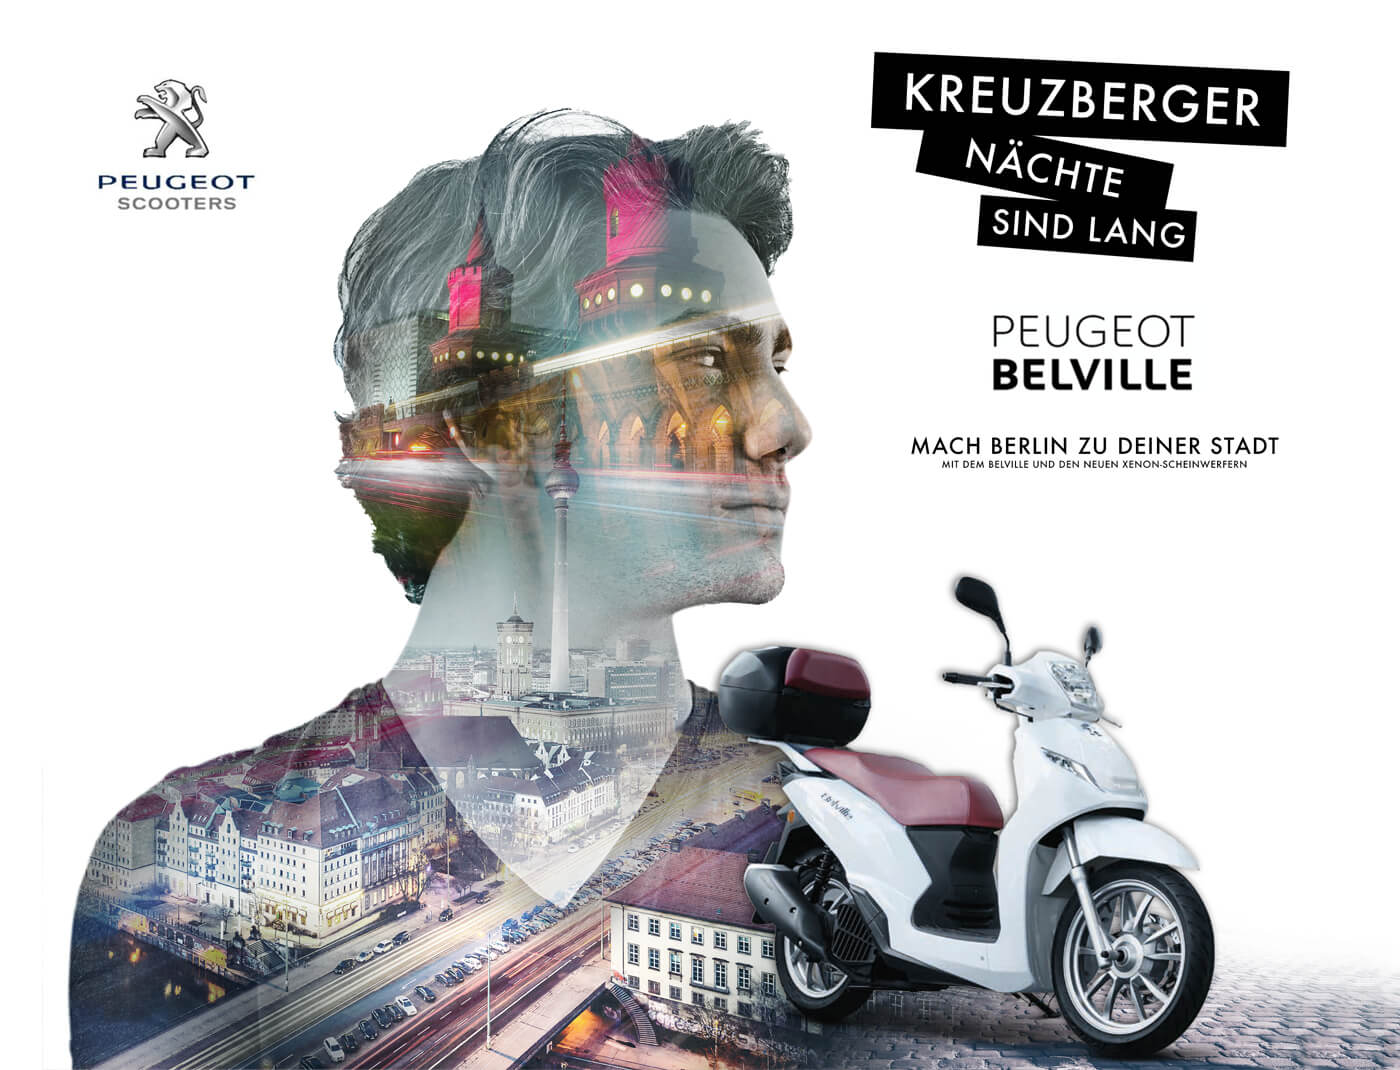 Peugeot Motocycles Deutschland General-Agentur